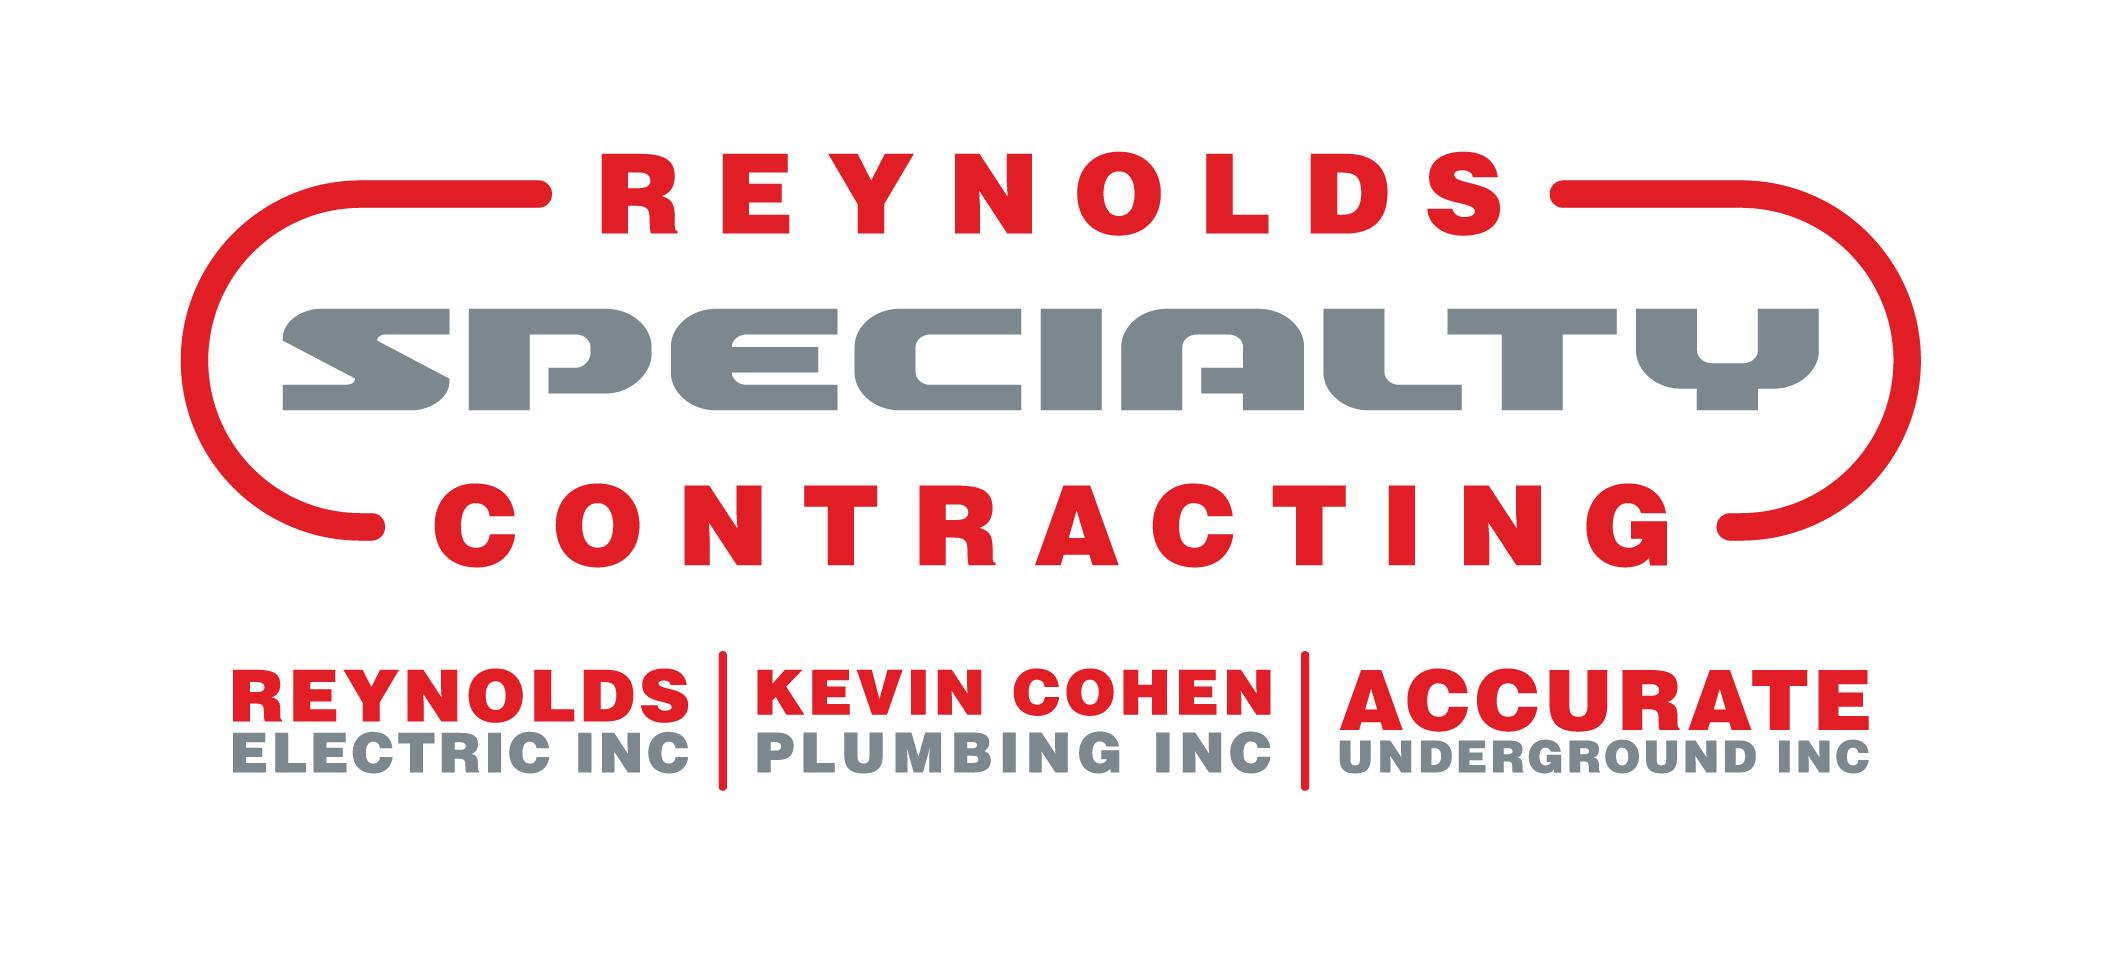 Reynolds Specialty Contracting – COVID19